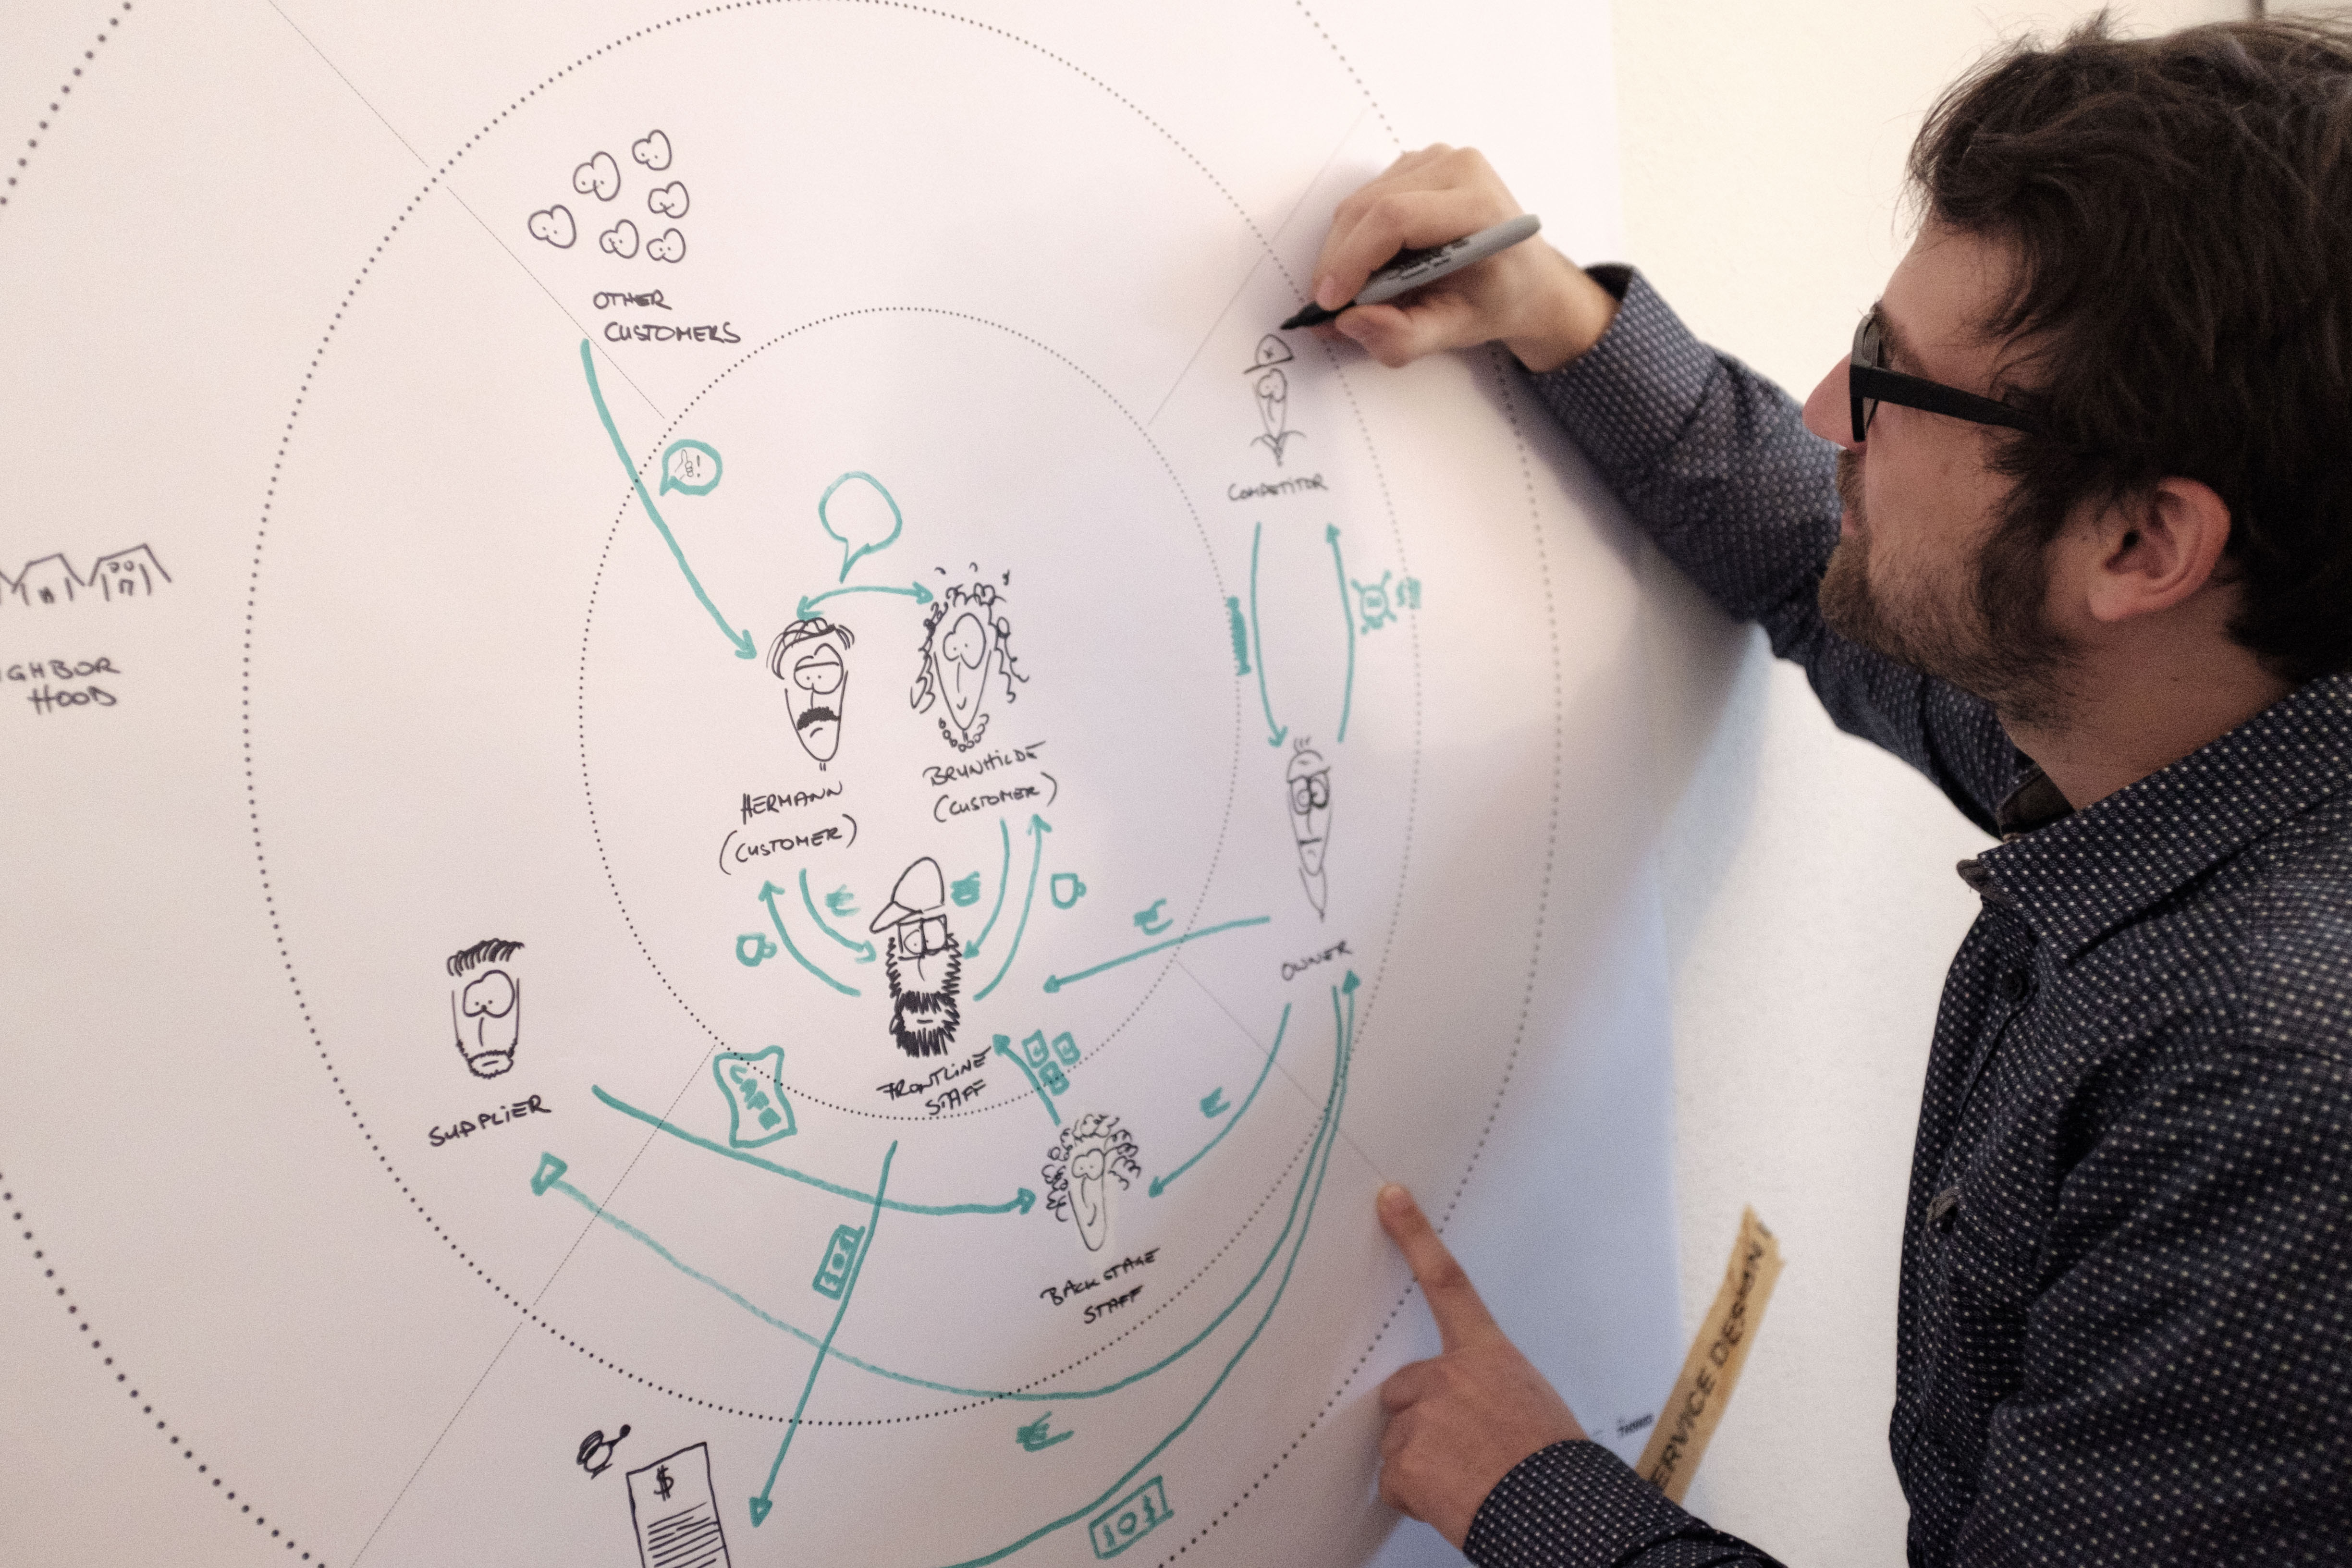 person drawing on stakeholder map template hanging from a wall